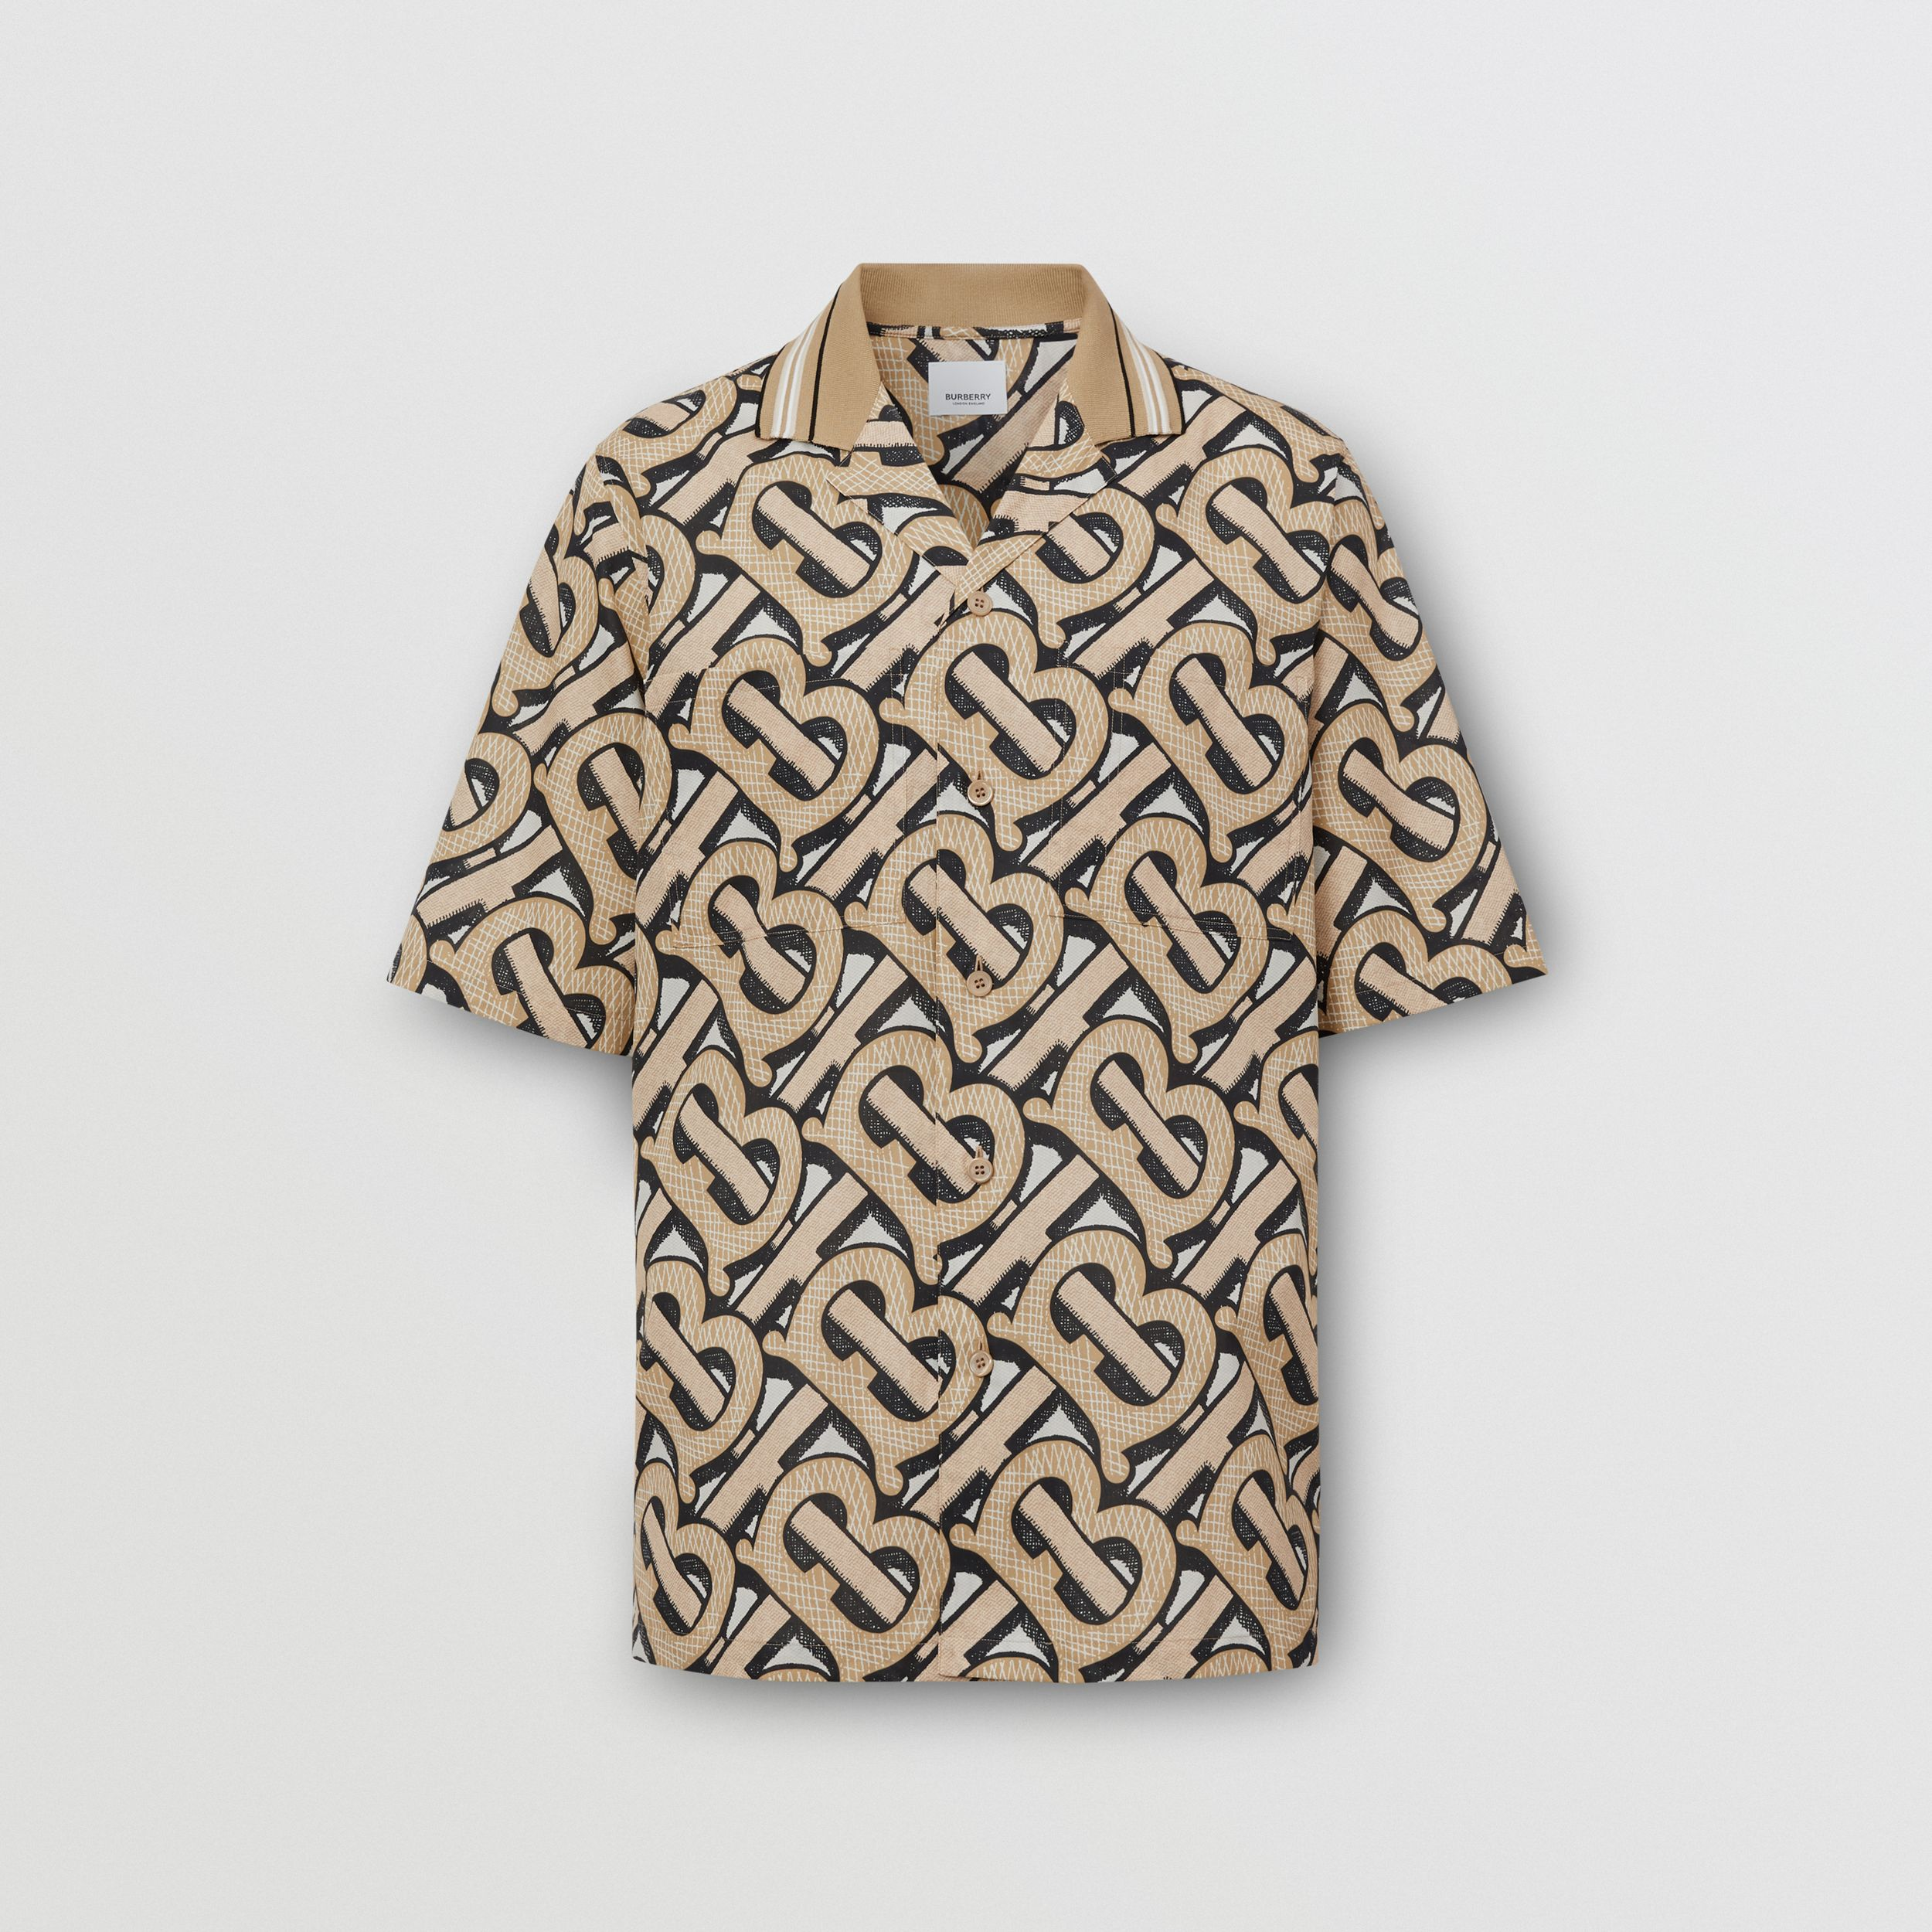 Short-sleeve Monogram Print Cotton Shirt – Unisex in Dark Beige | Burberry - 1